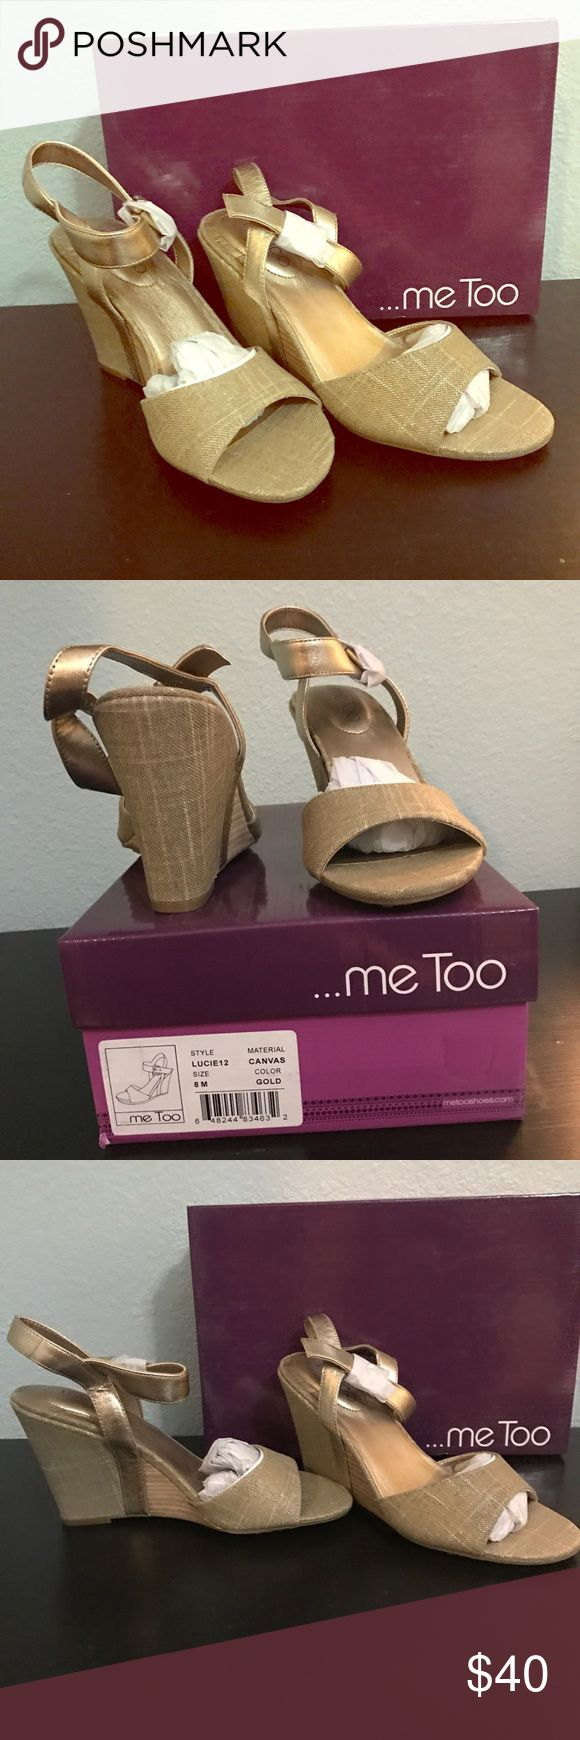 New Me Too Lucie12 Gold Open Toe Sandal Wedge 8 Brand new in the box never been worn Me Too Lucie 12 Gold Canvas Open Toe Sandal Wedge Women's Size 8  Gold! These were in QVC because they are so comfortable and cute- they have so many uses me too Shoes Sandals